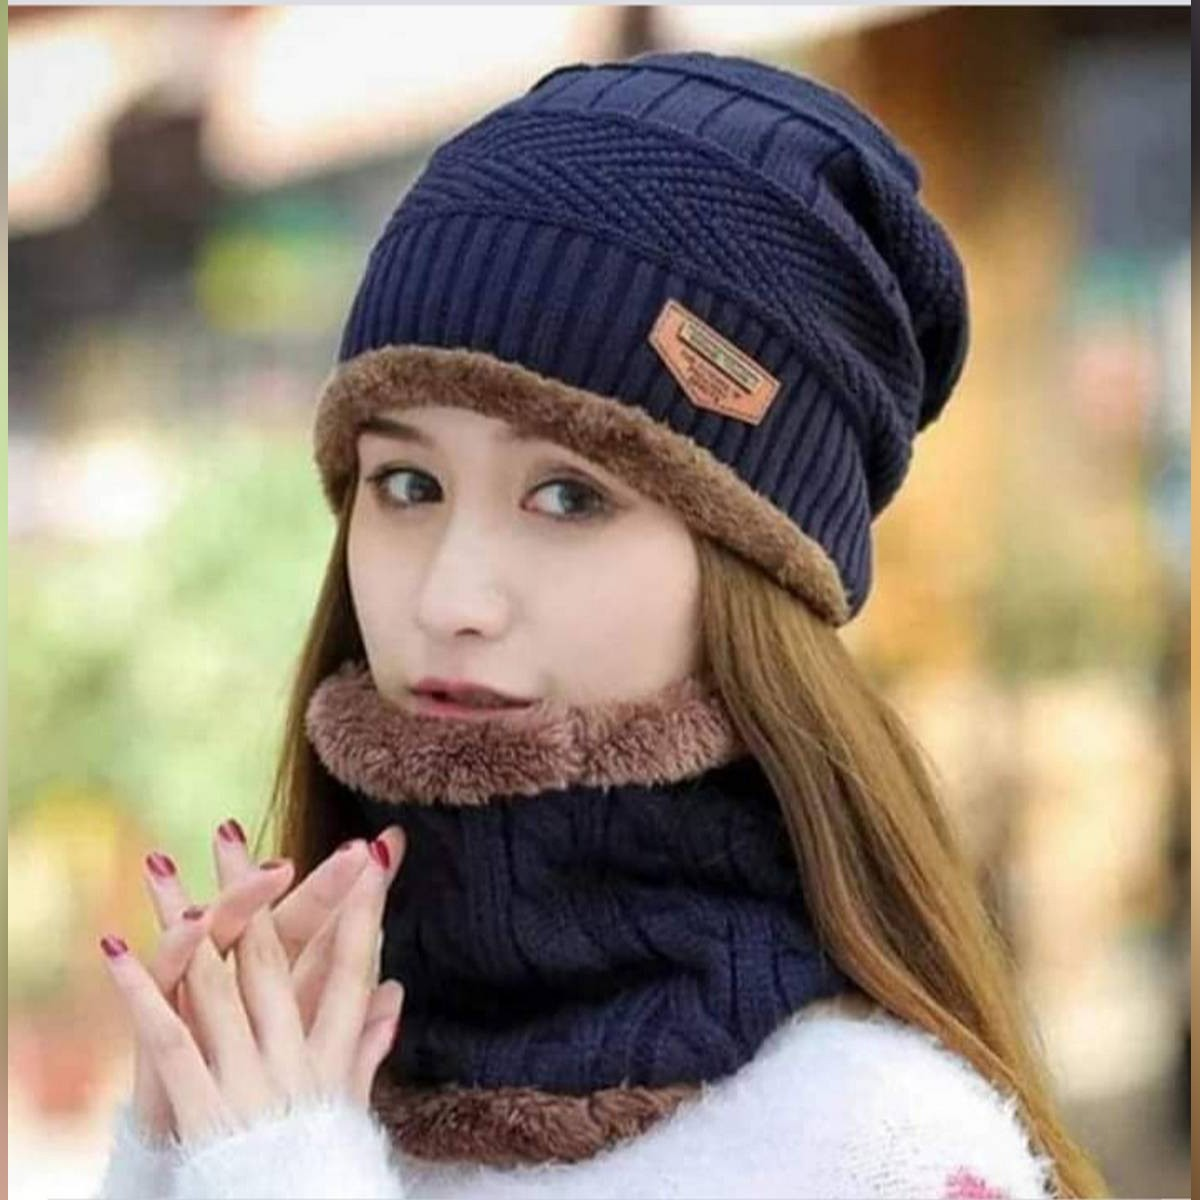 UNISEX Hot Knitted Cap Neck Warmer Winter Hat, Hot  Cap and Neck Warmer